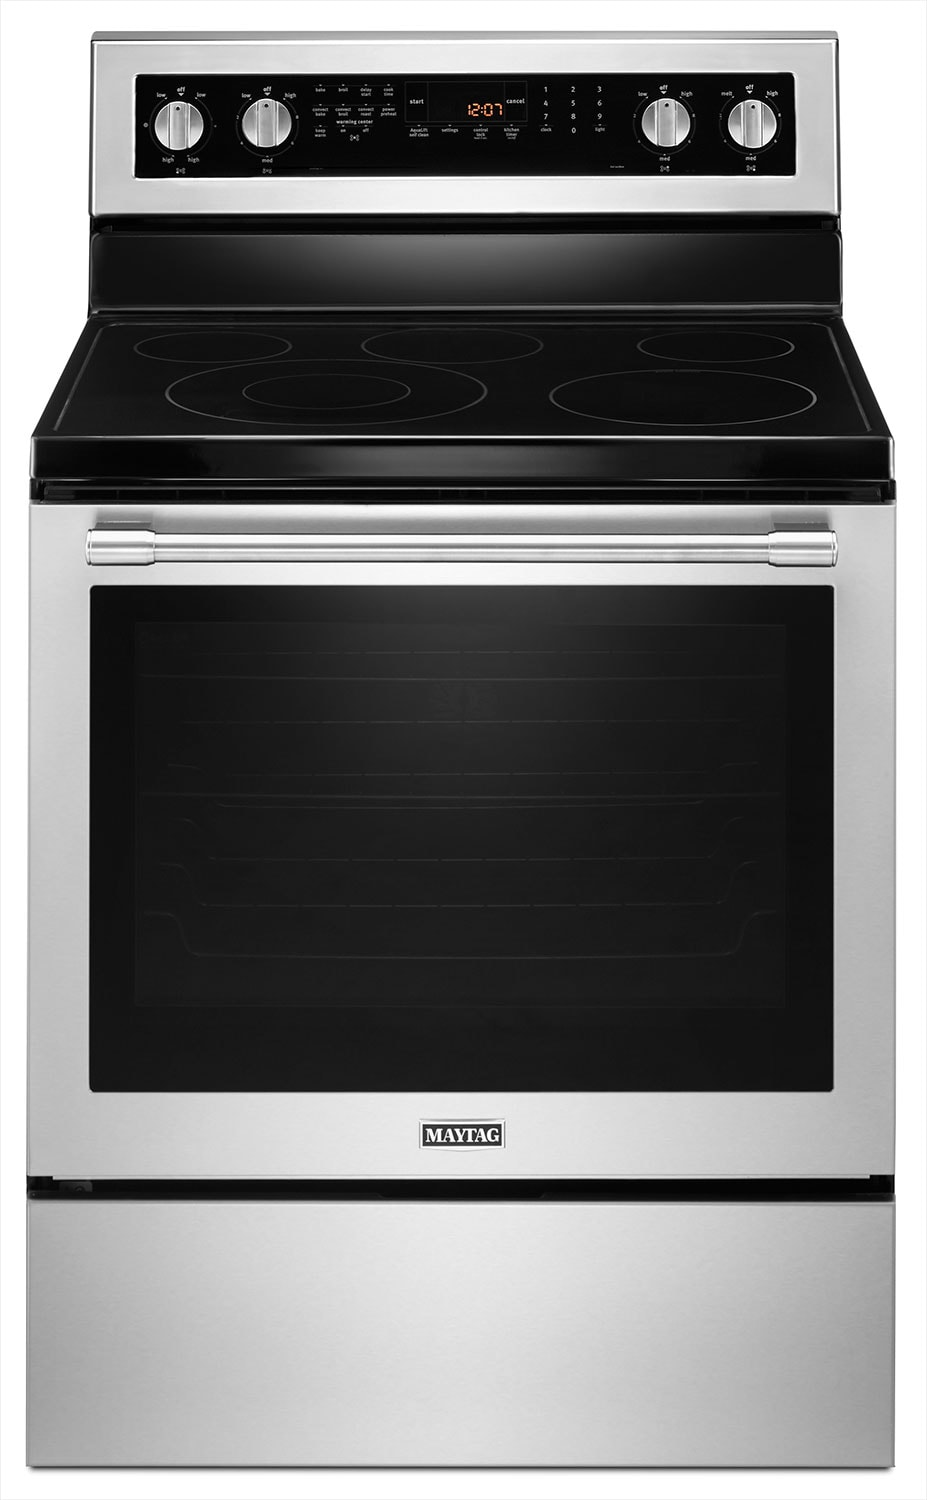 Cooking Products - Maytag 6.4 Cu. Ft. Electric Range – YMER8800FZ